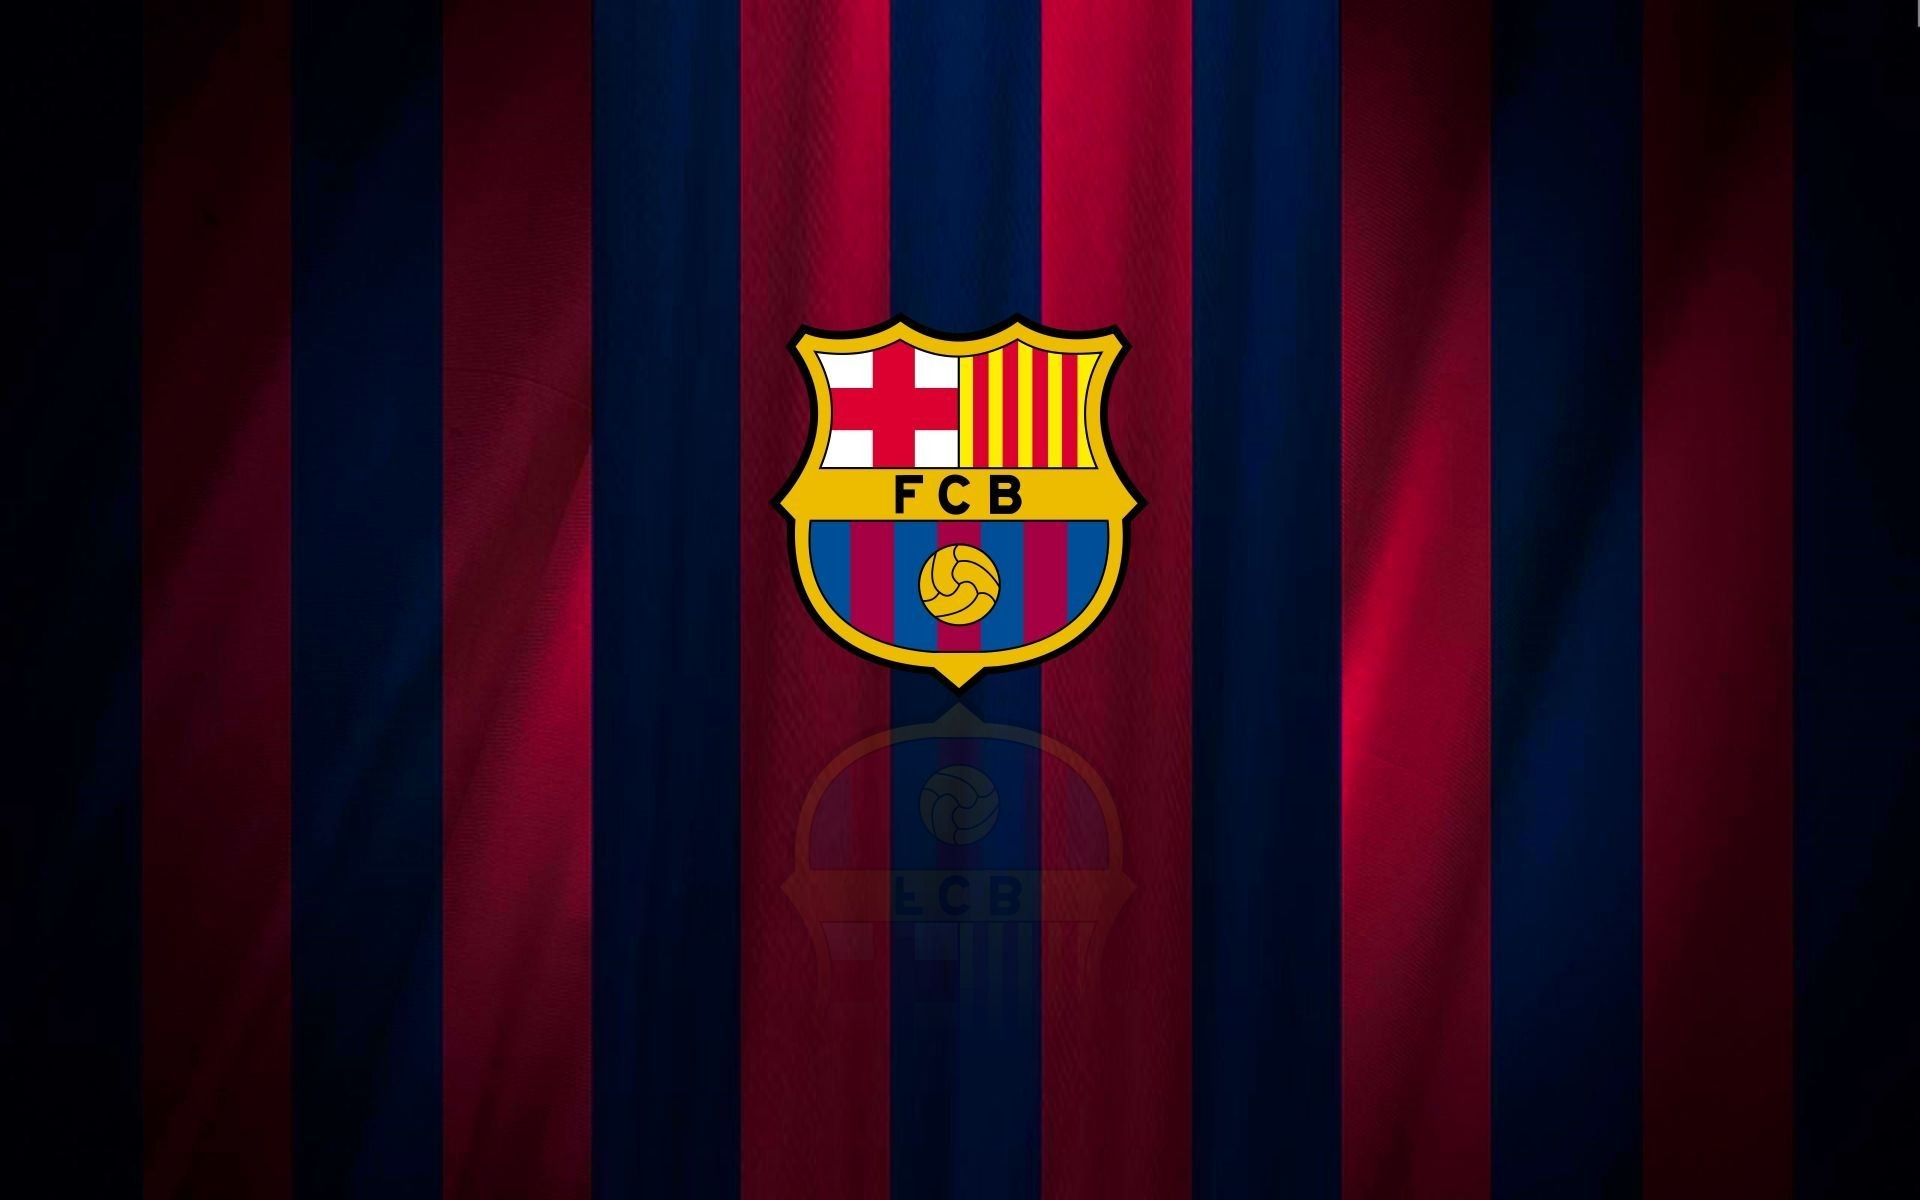 0a80ad39c8f 1920x1200 Logo of FC Barcelona Wallpapers 2017 6 · Download · 1920x1200 ...